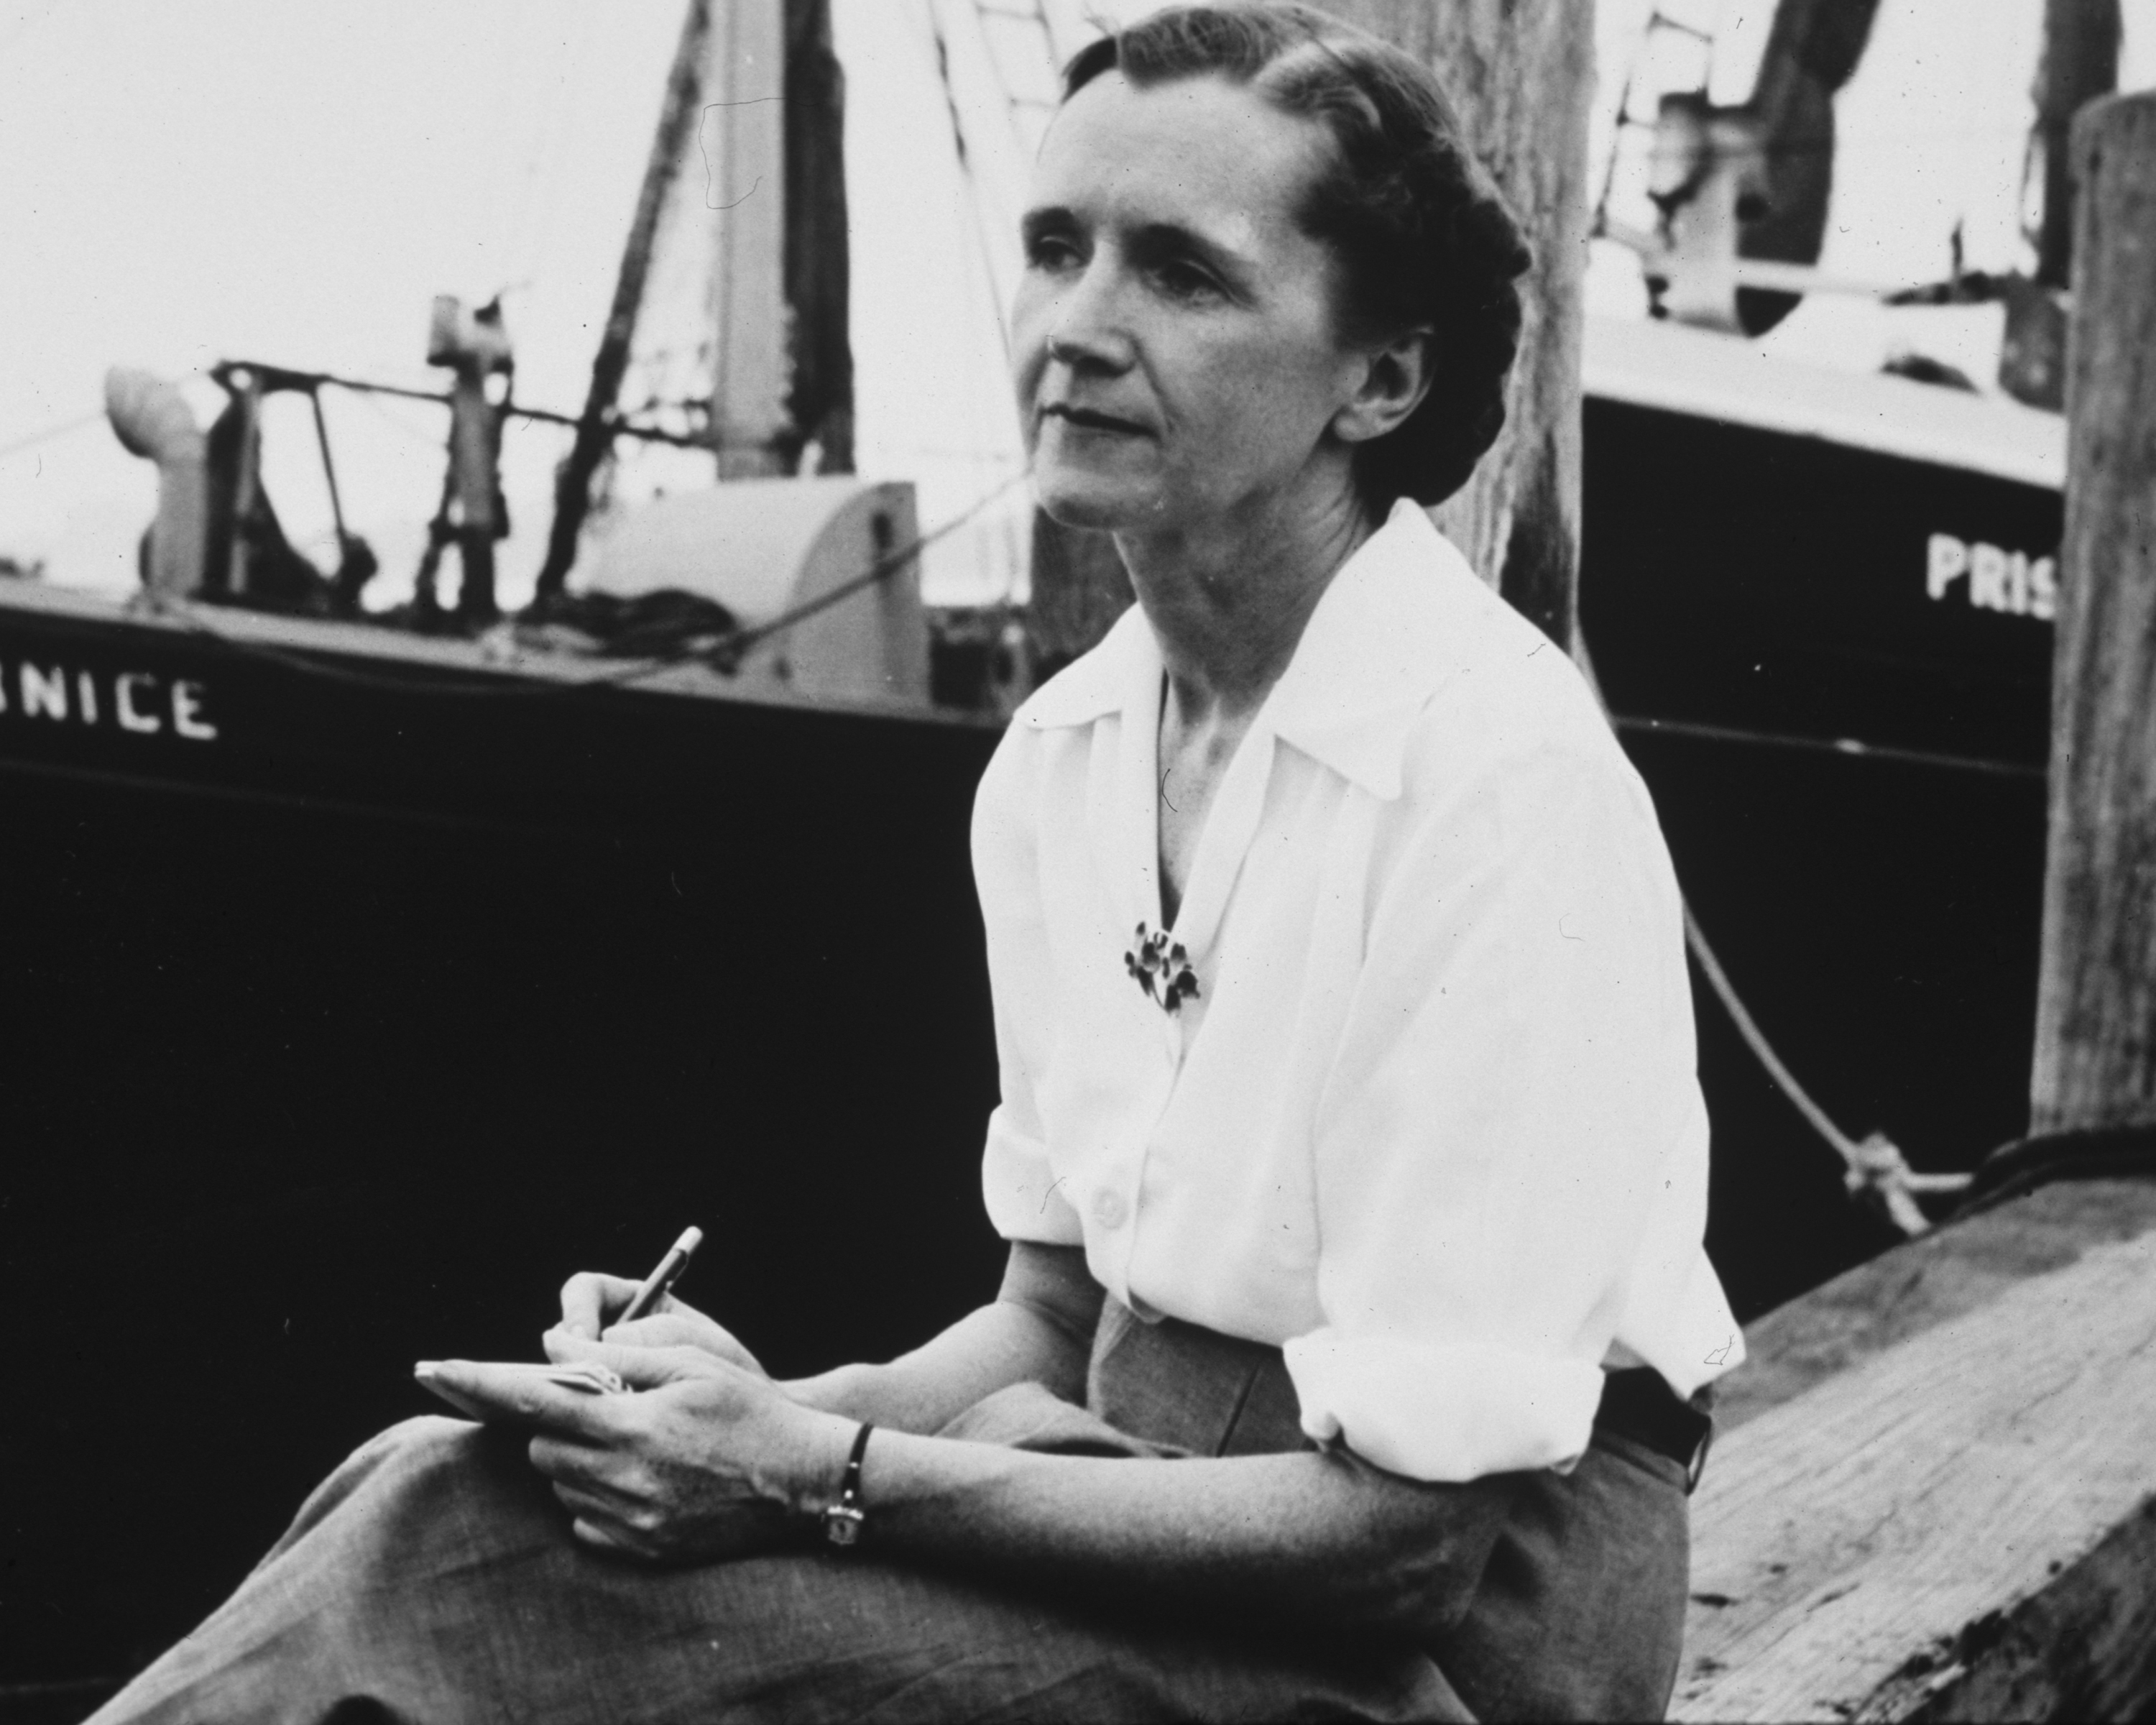 Rachel Carson sits with pen in hand on a dock, with a boat behind her, in this black-and-white historic photo.